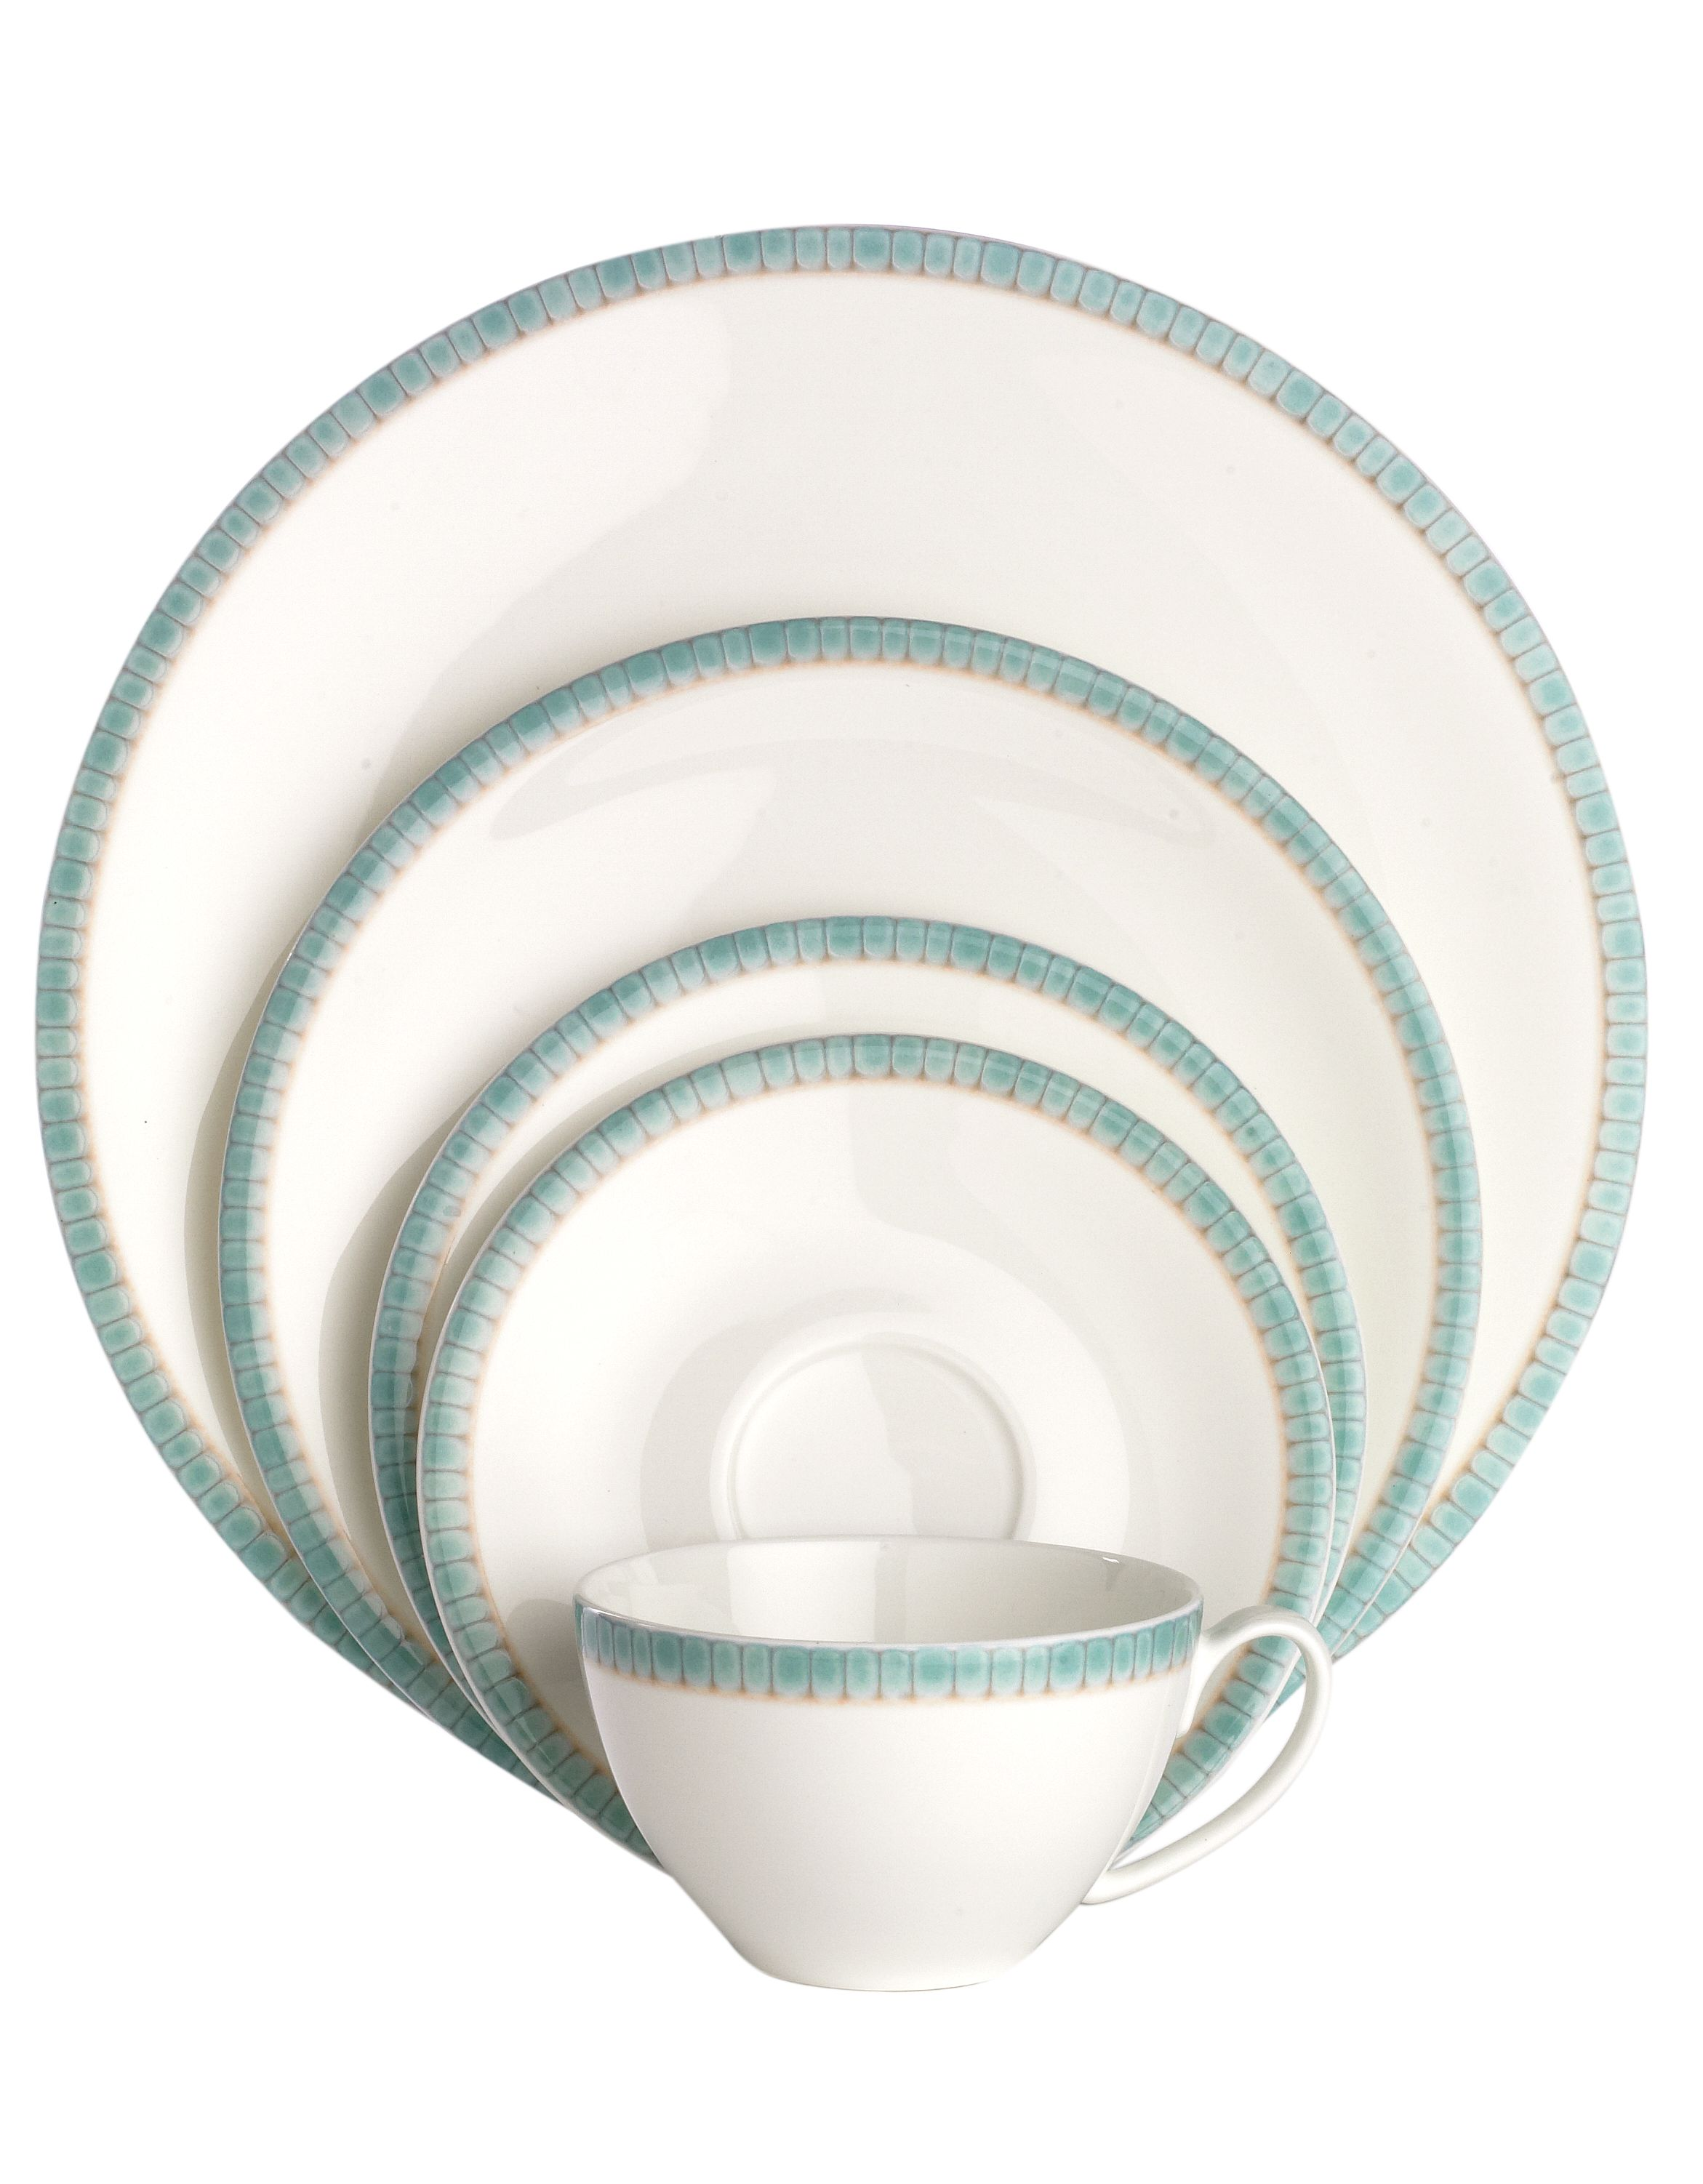 Jewel bone china dinnerware